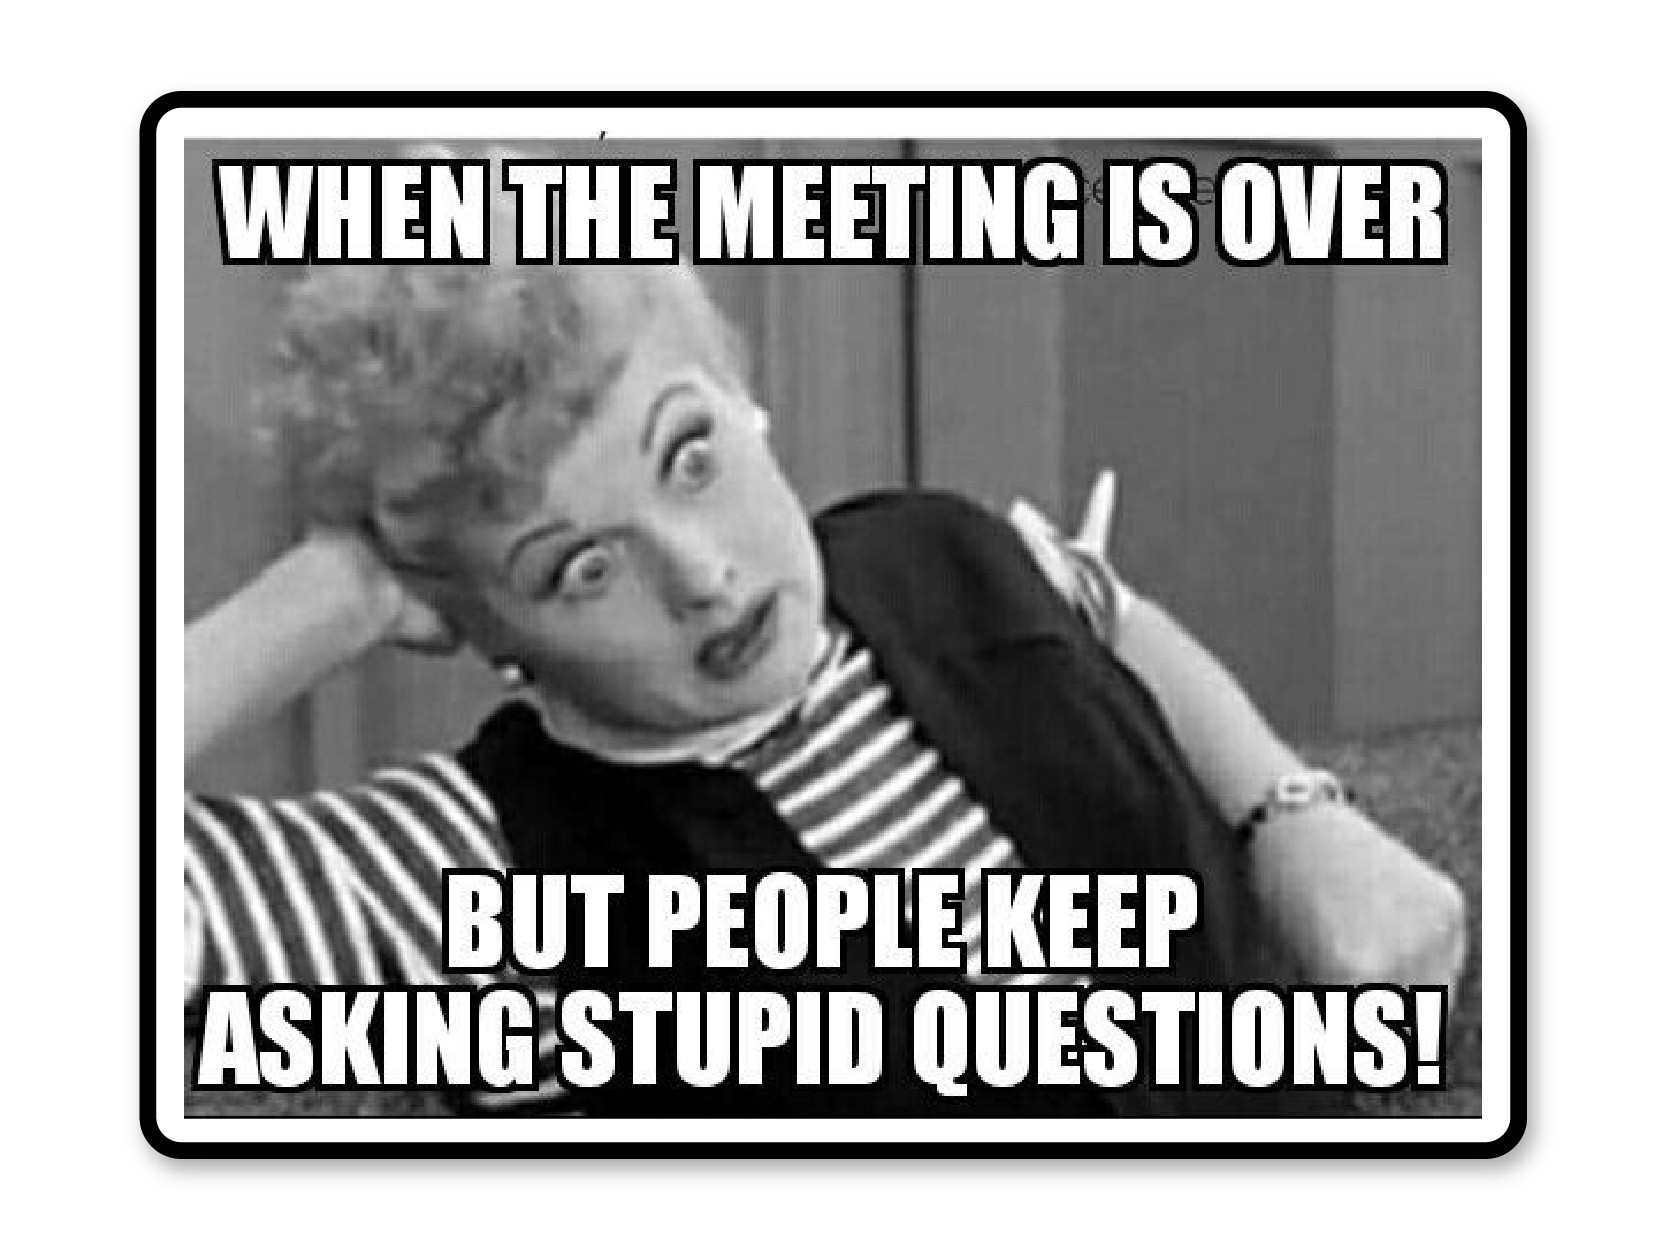 No questions at meetings